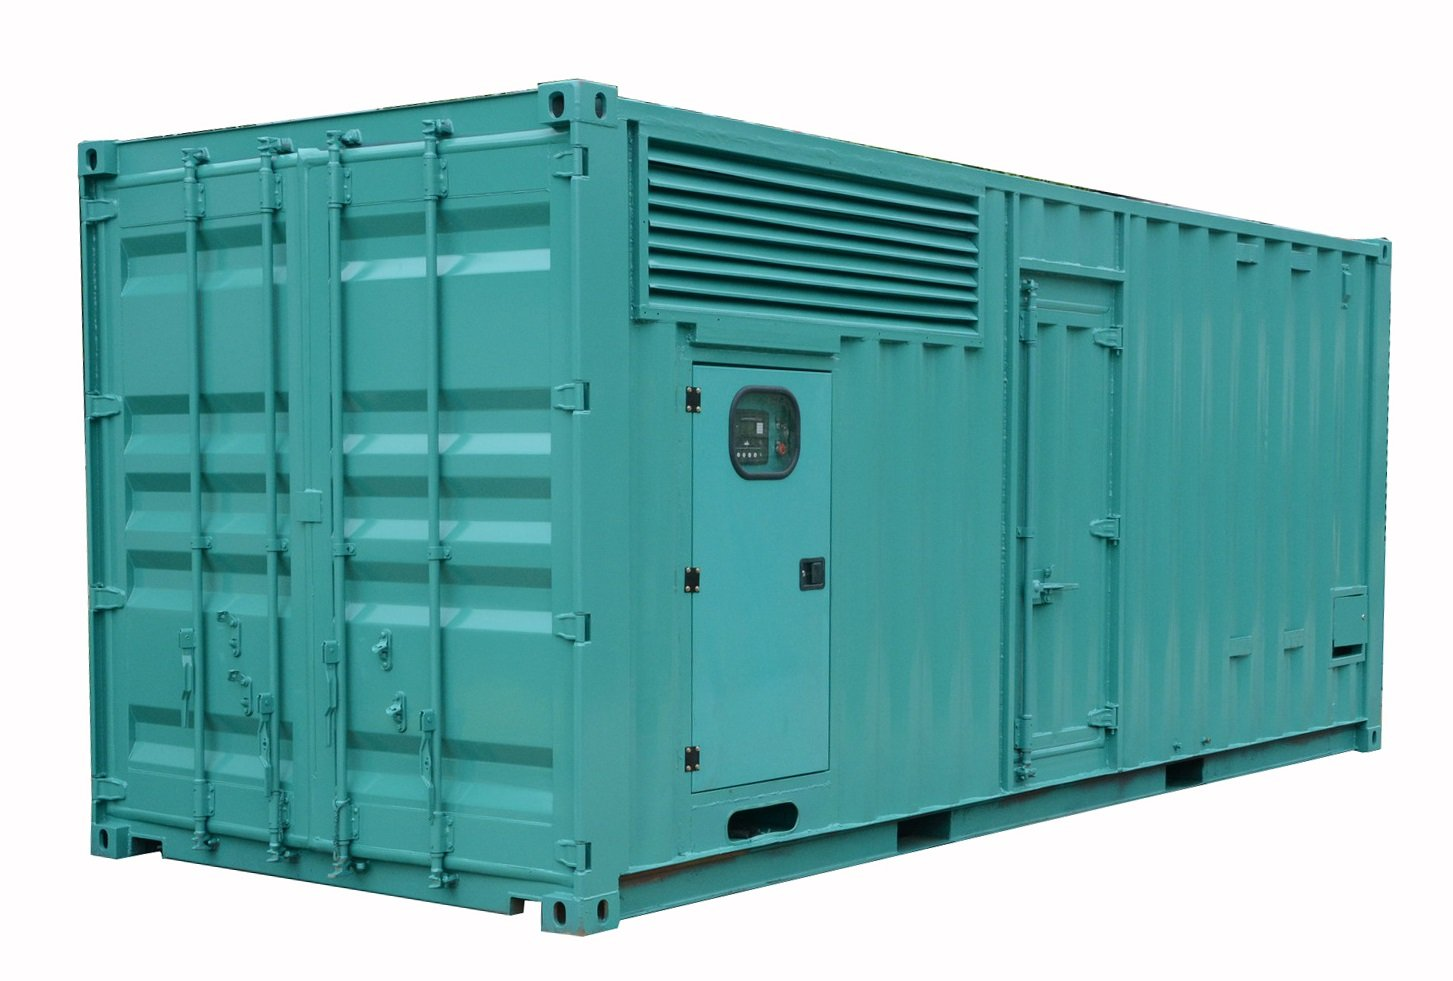 1000kVA Diesel Generator with Soundproof Canopy Made by Standard 20fts Container